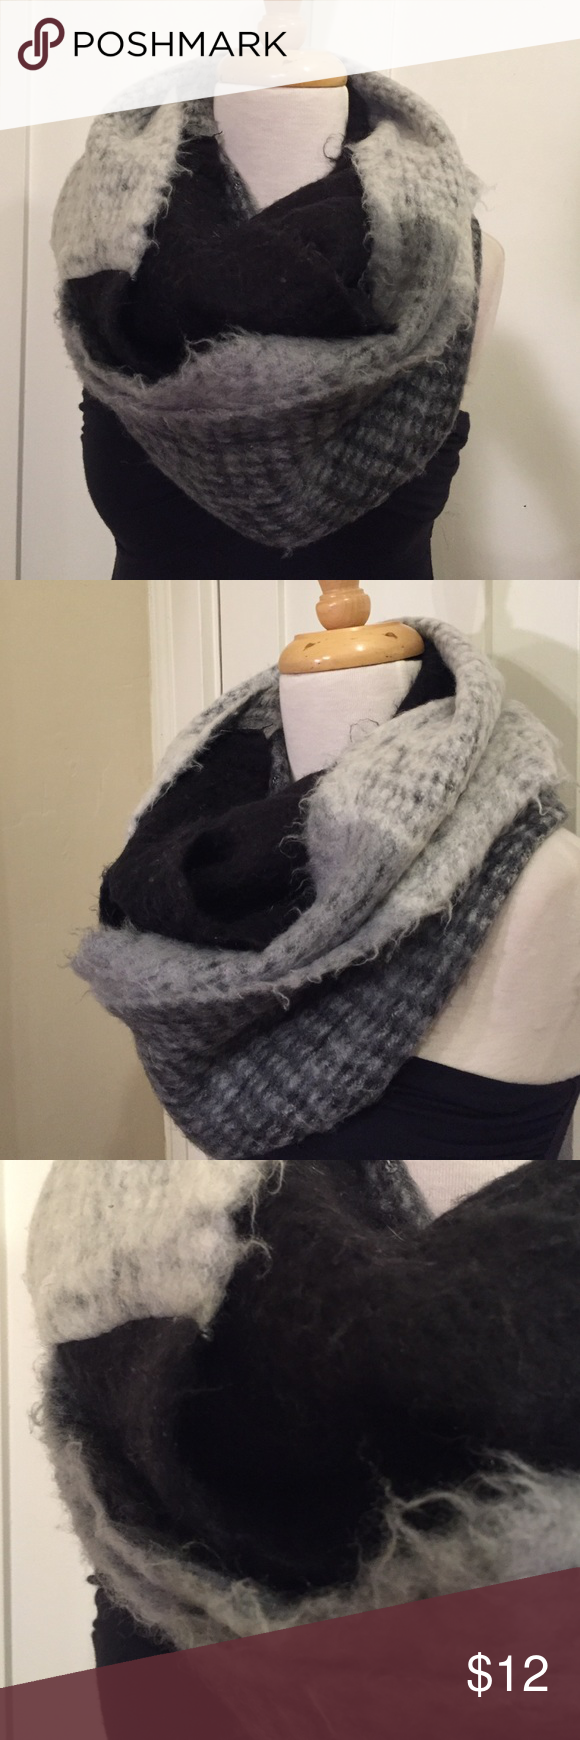 Steve madden black gray fuzzy felt infinity scarf This is a cozy black and gray almost felt like Infinity scarf by Steve Madden . Super cozy and soft good condition minor pilling, see pictures for details. Be sure and check out other listed items and bundle to save. Steve Madden Accessories Scarves & Wraps